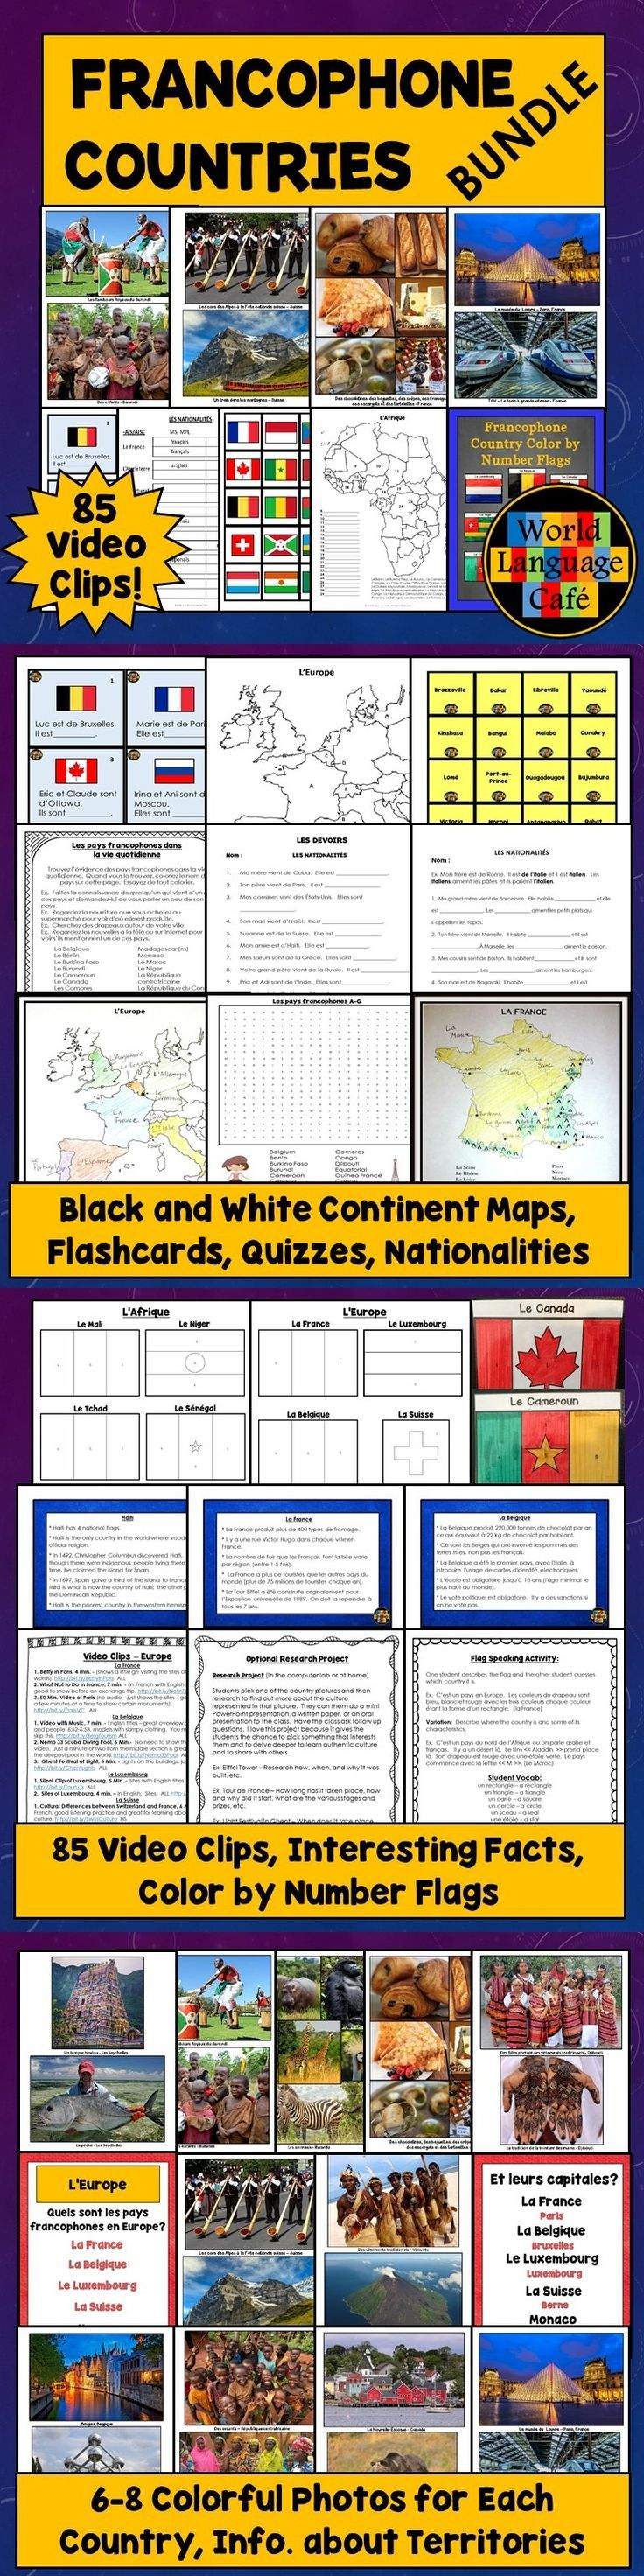 Want Francophone culture lesson plans for the whole year for your French classes? Students will learn about all the French speaking countries via colorful photos, maps, nationality practice, interesting facts, flags, video clips, and so much more. Great for peaking your students' interest in French class. - World Language Cafe